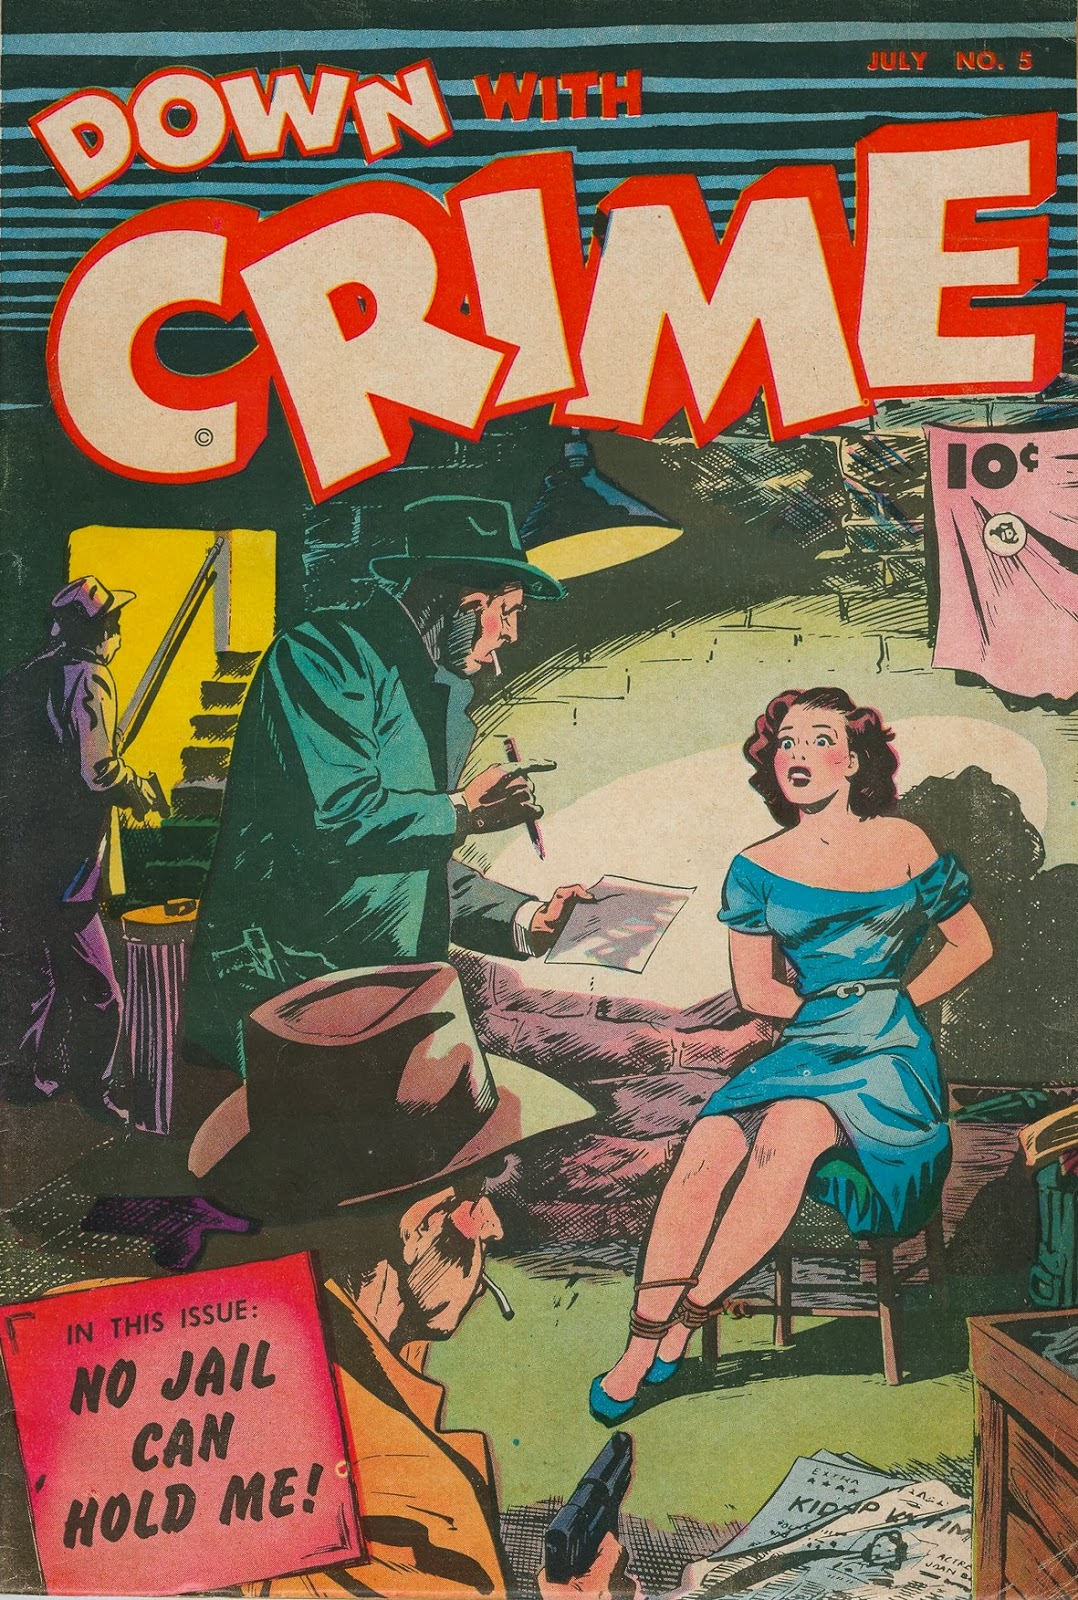 Down with Crime 5